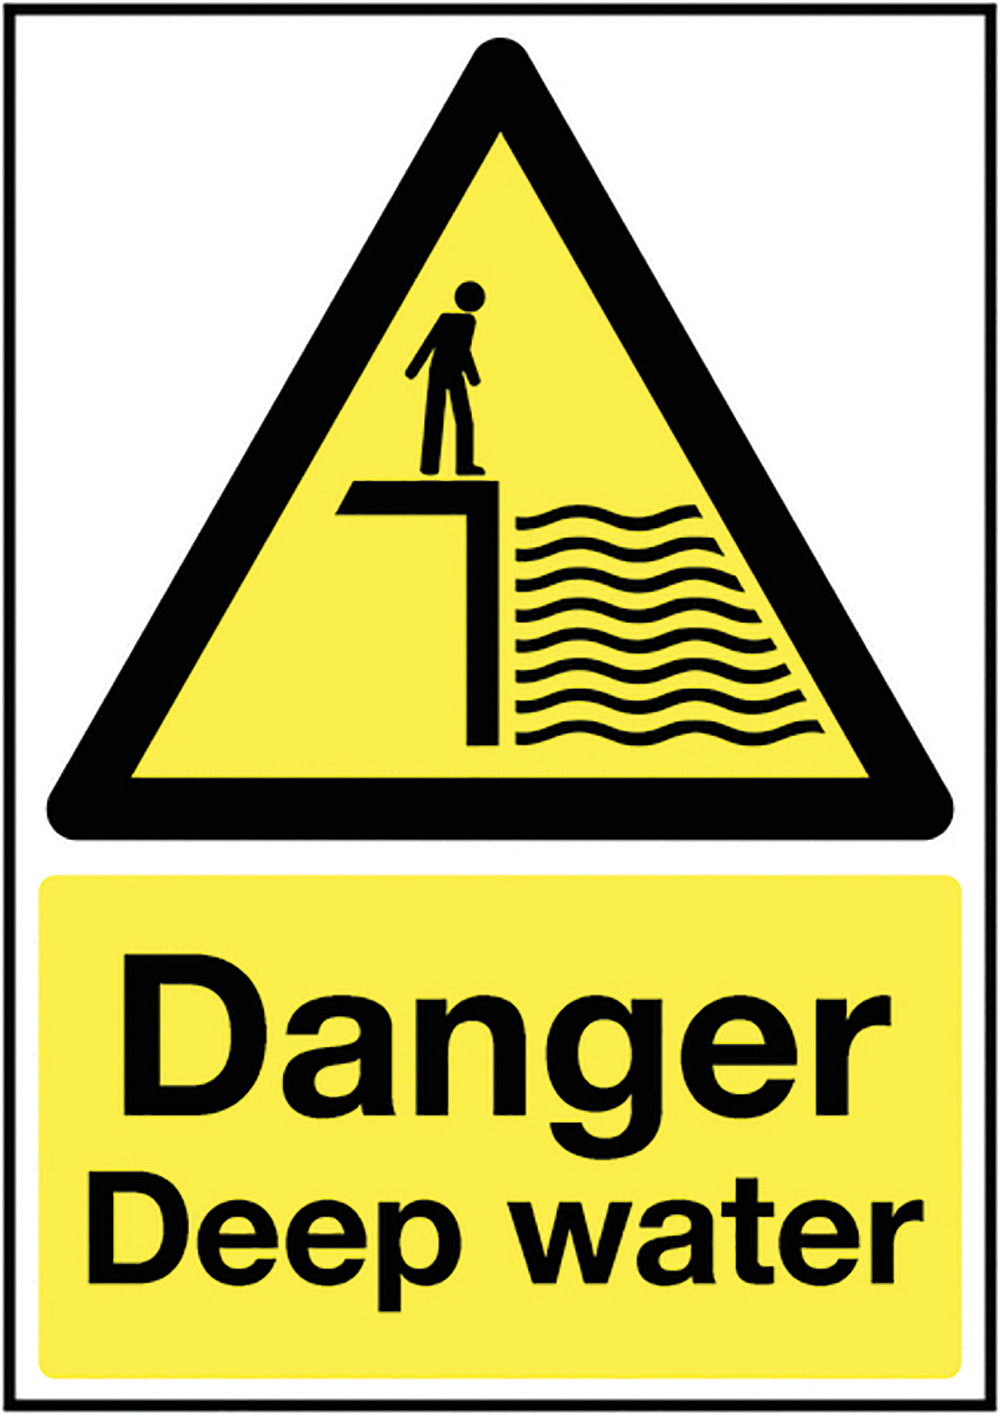 Danger Deep Water 297x210mm 1.2mm Rigid Plastic Safety Sign